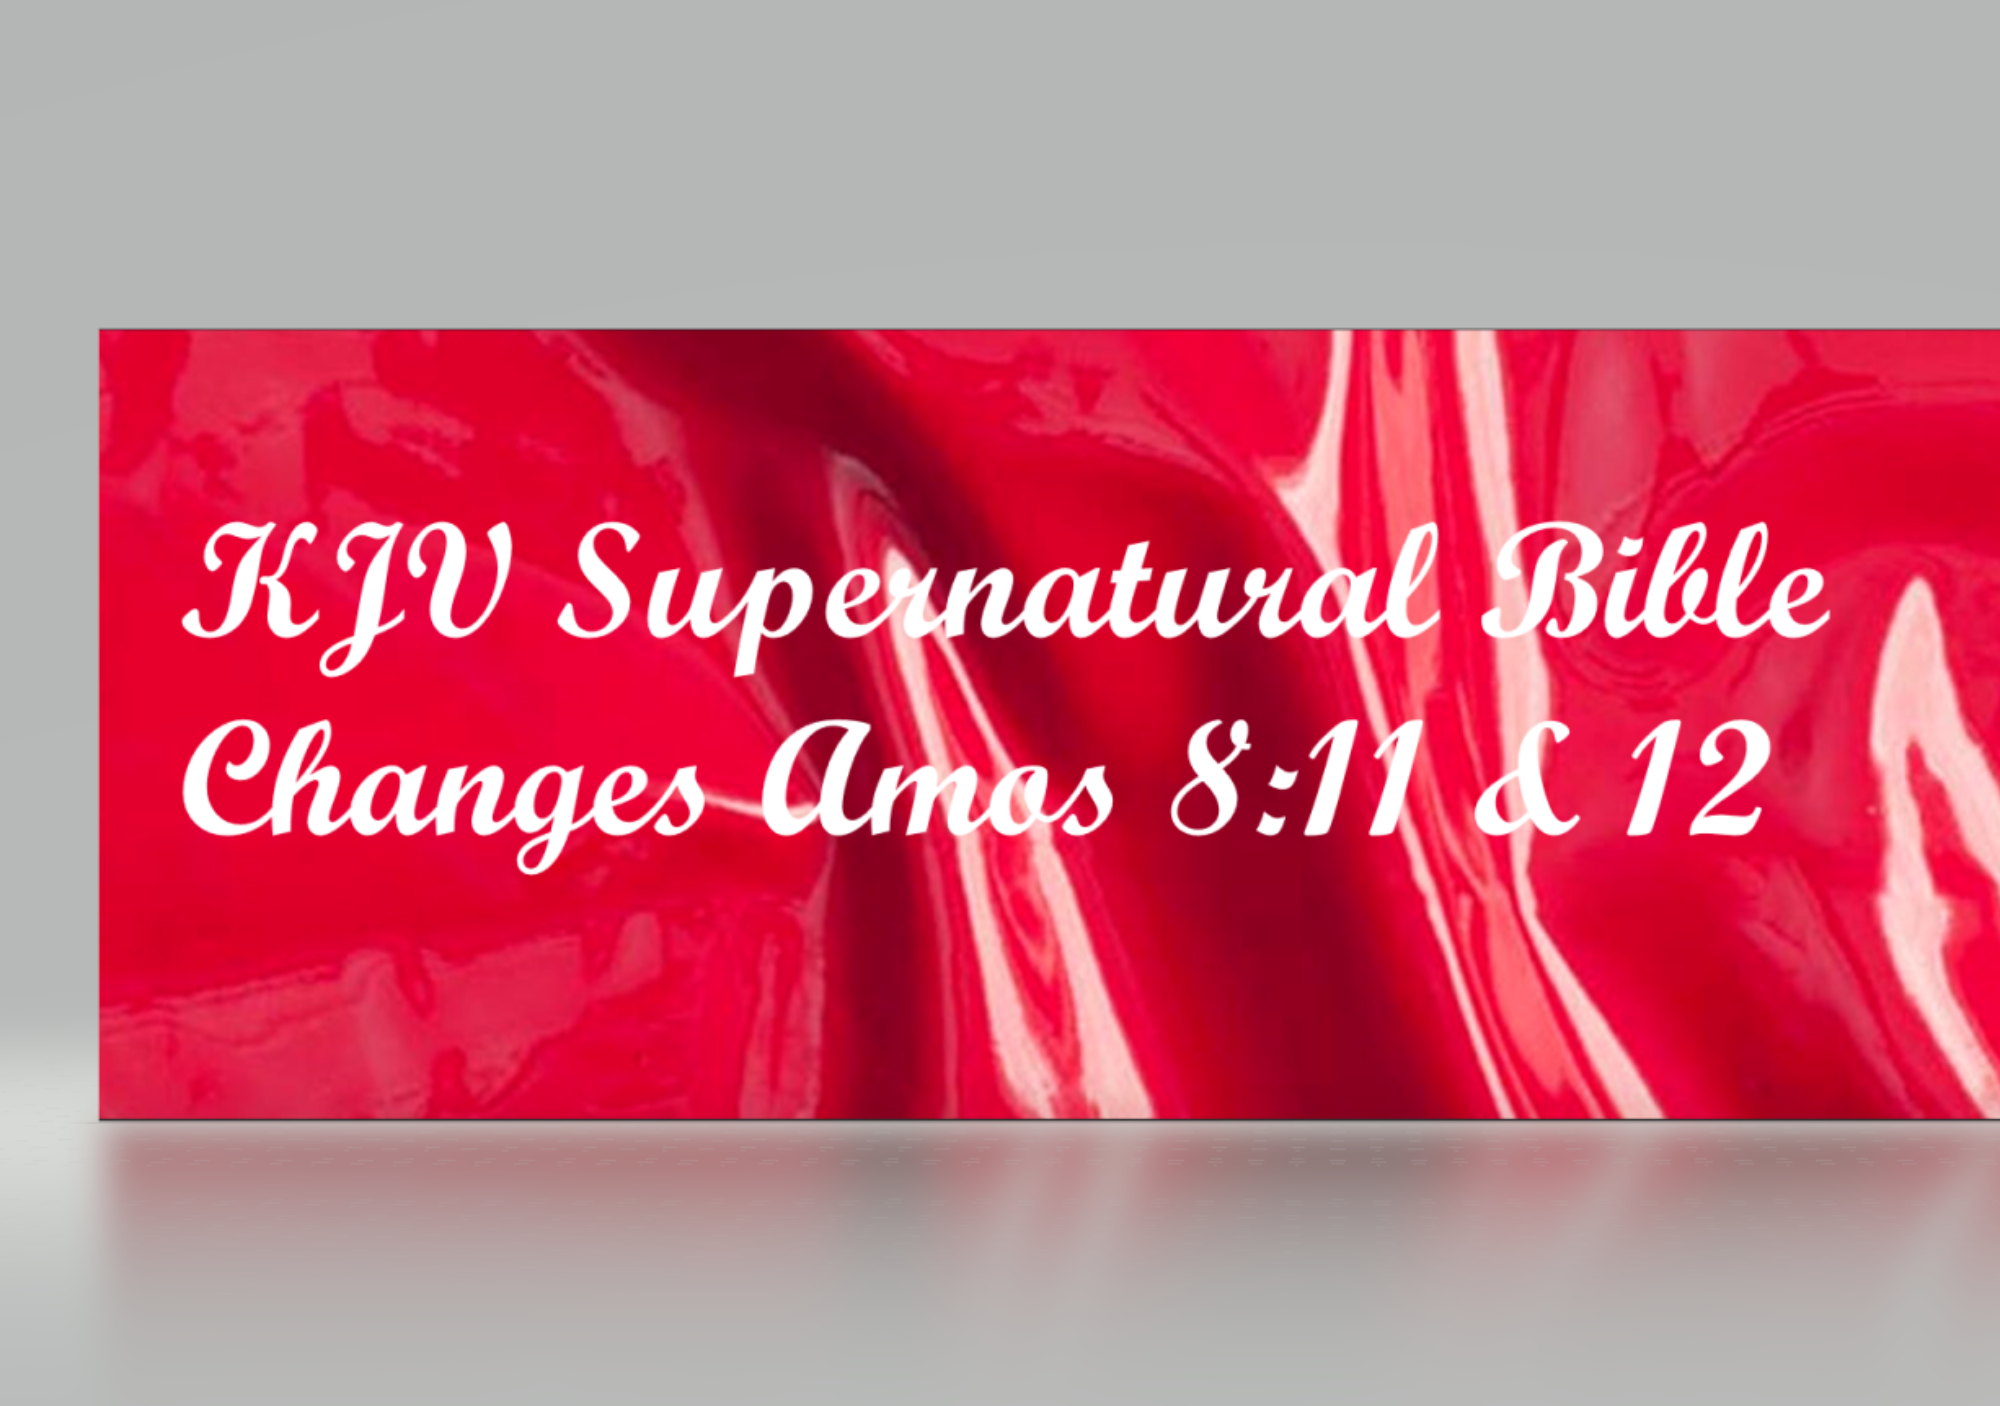 KJV Supernatural Bible Changes